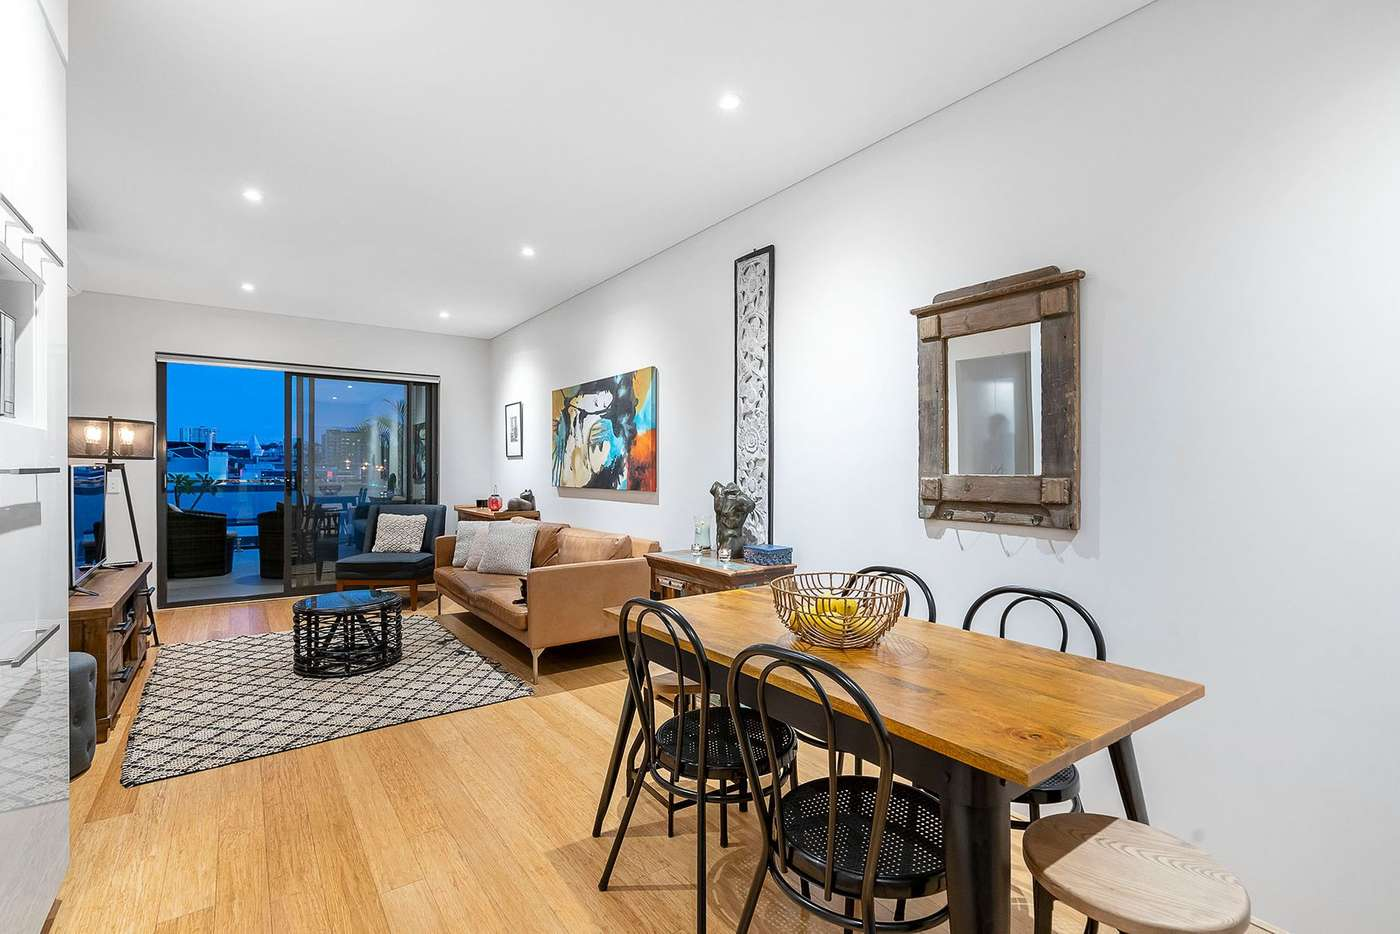 Main view of Homely apartment listing, 28/152 Fitzgerald Street, Perth WA 6000